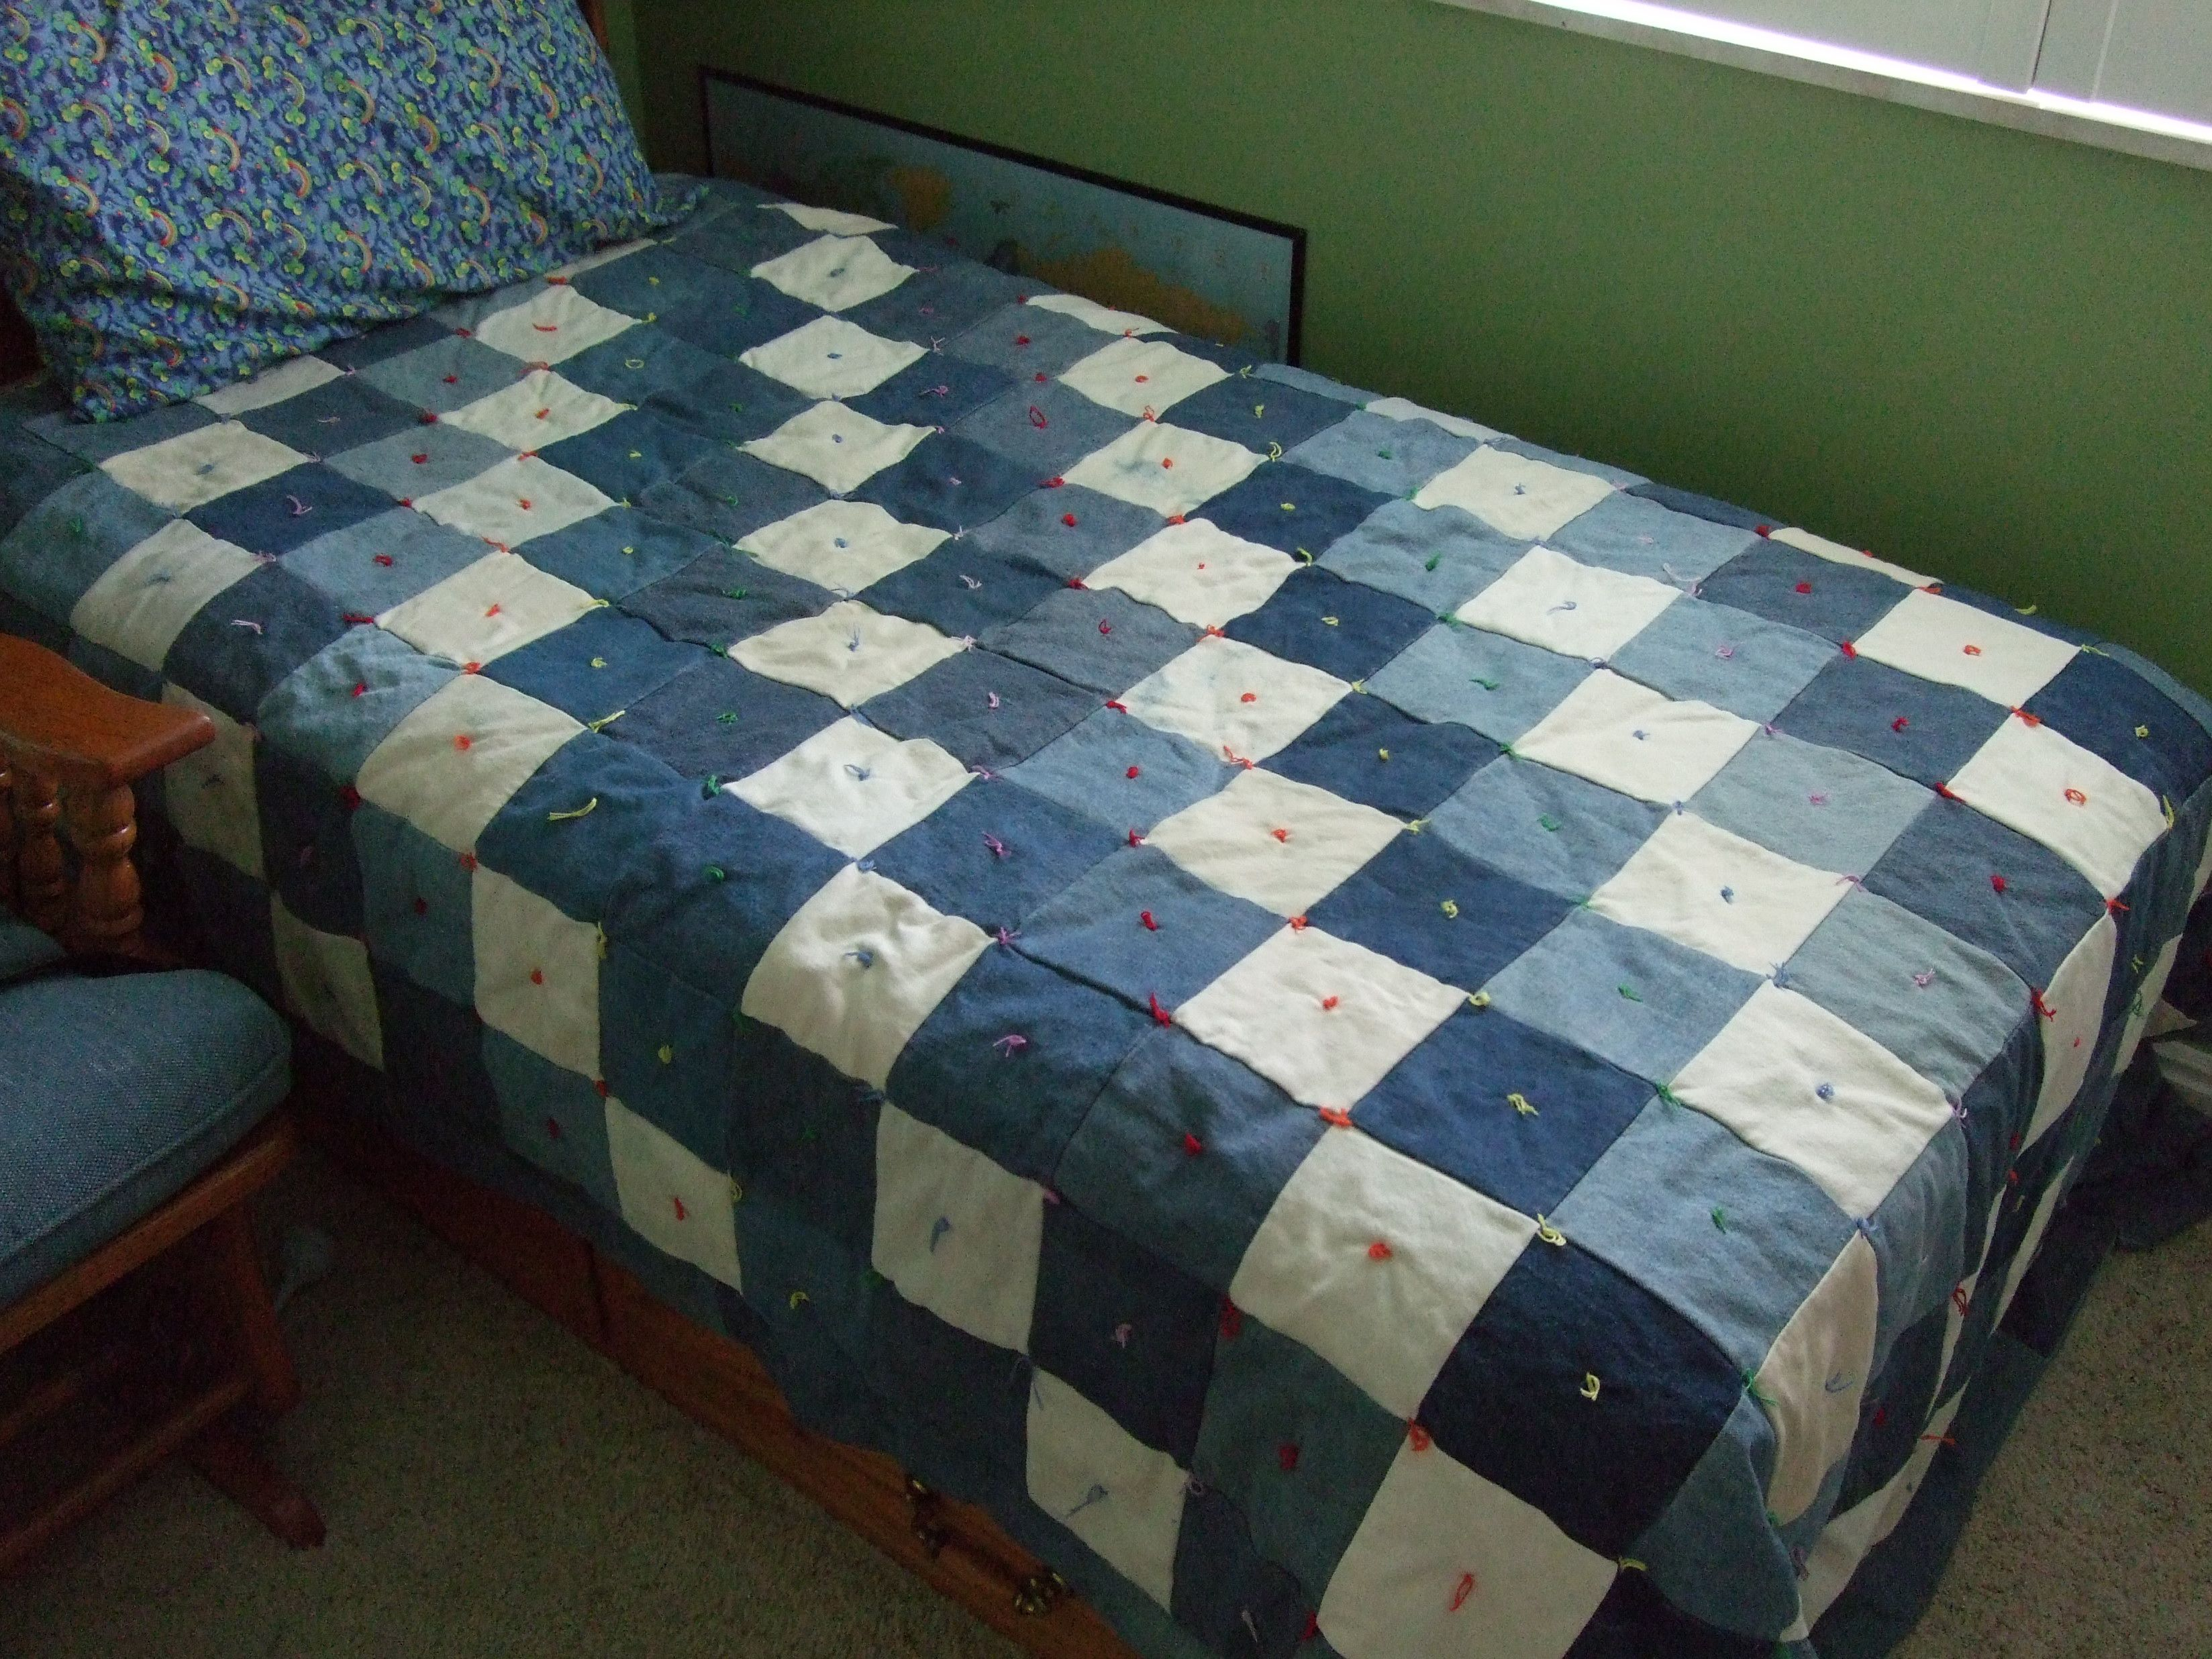 reuse old jeans with a jean quilt | quilts | Pinterest | Reuse ... : denim quilts pinterest - Adamdwight.com